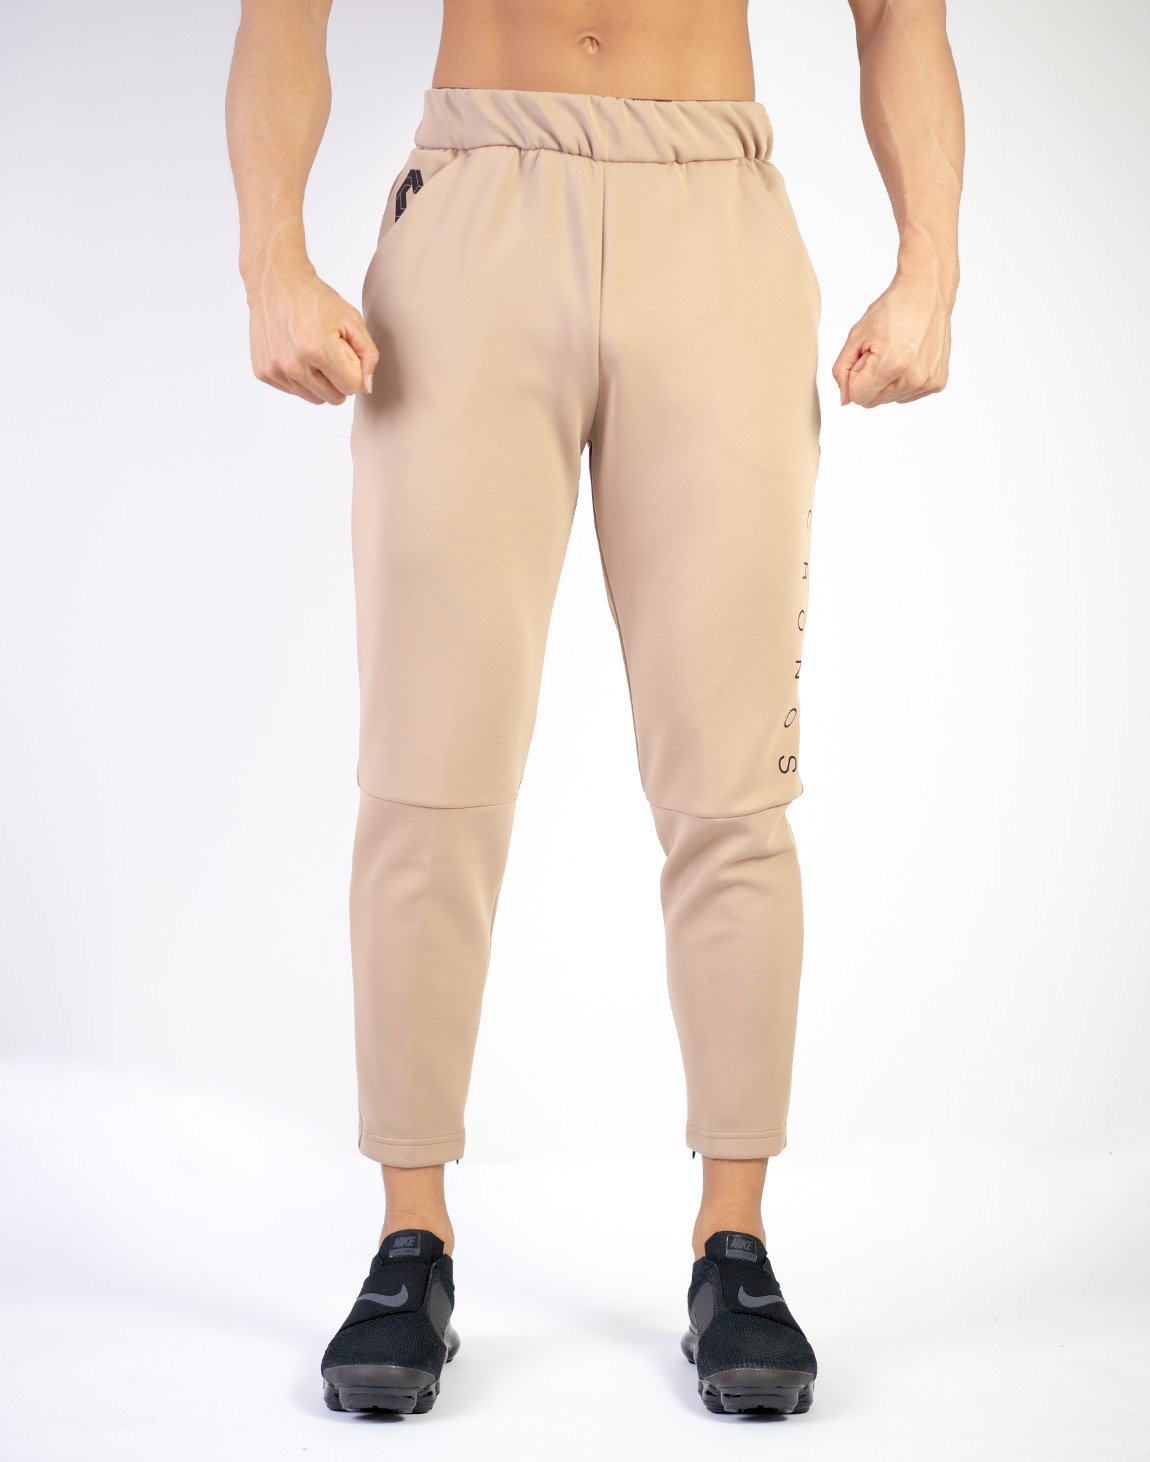 MODE BASIC DESIGN PANTS 02 BEIGE